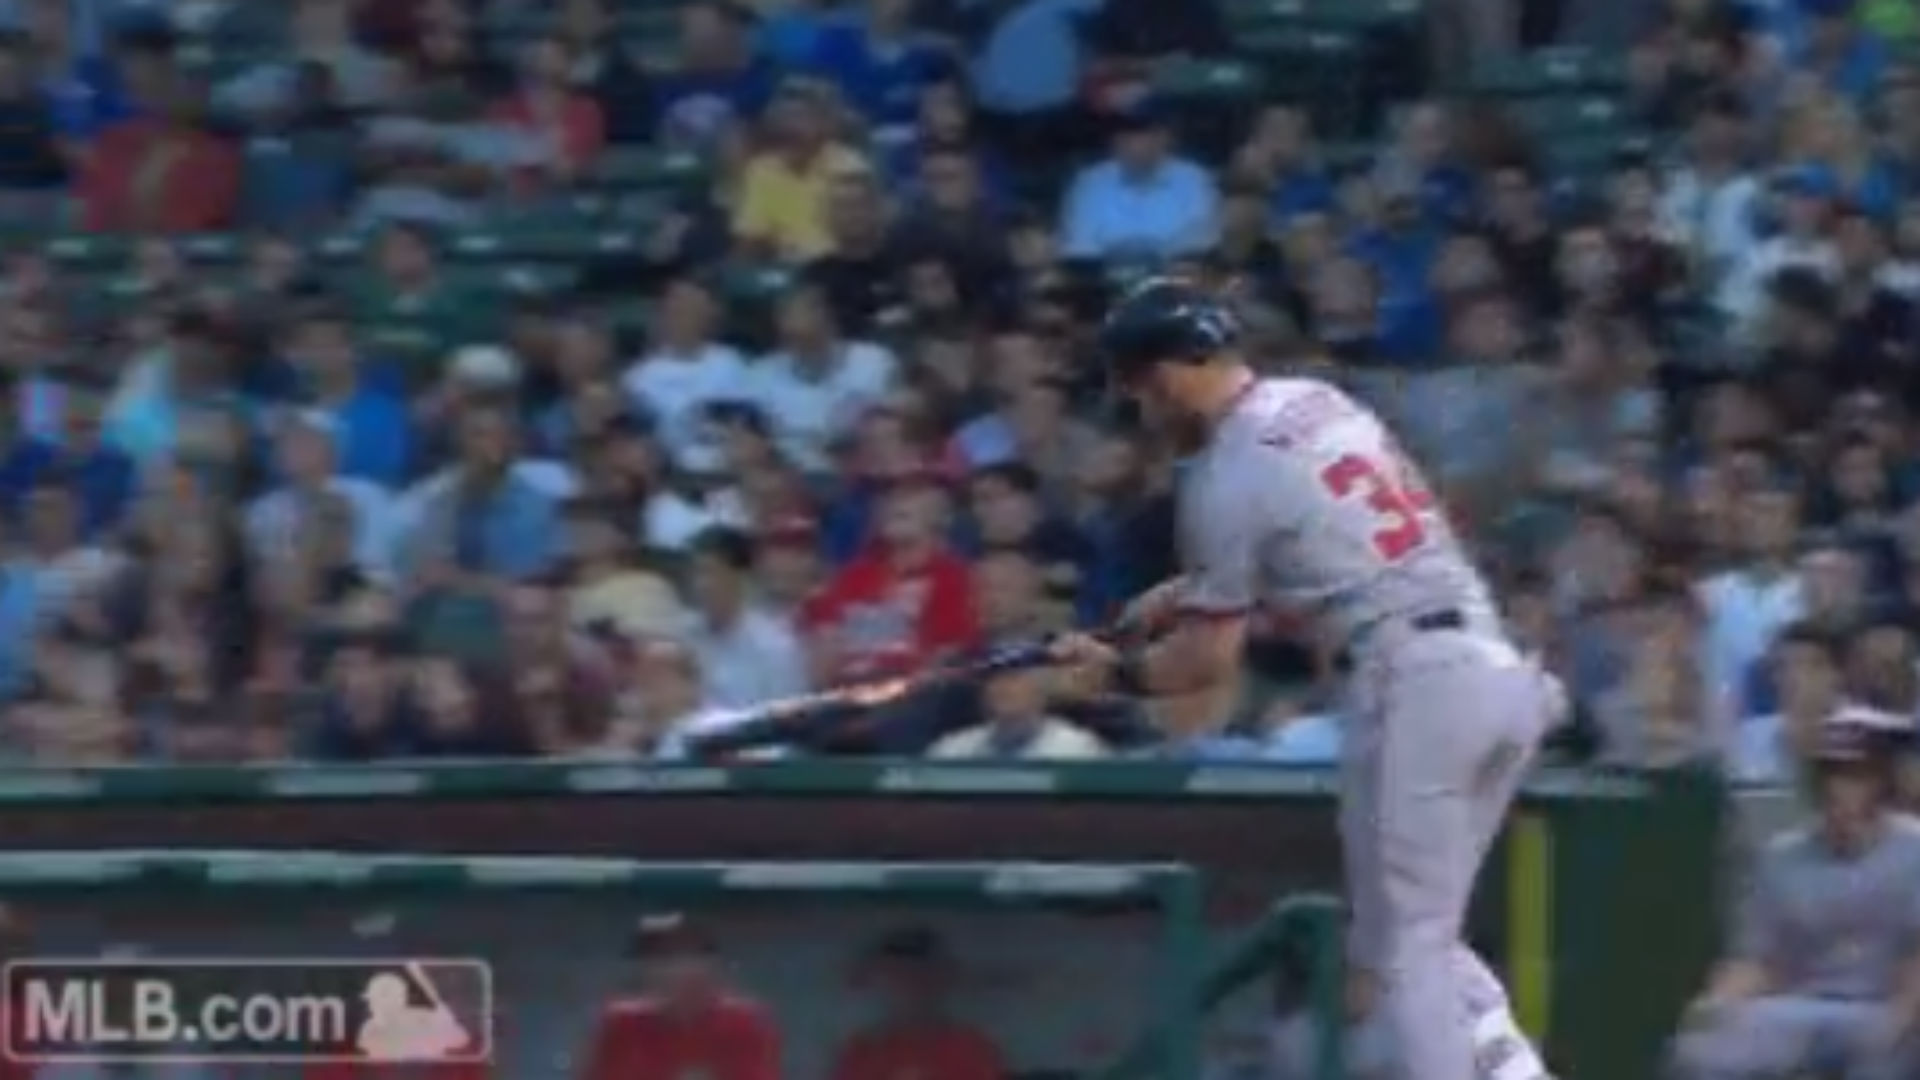 Bryce Harper upset he popped out, hits home run instead